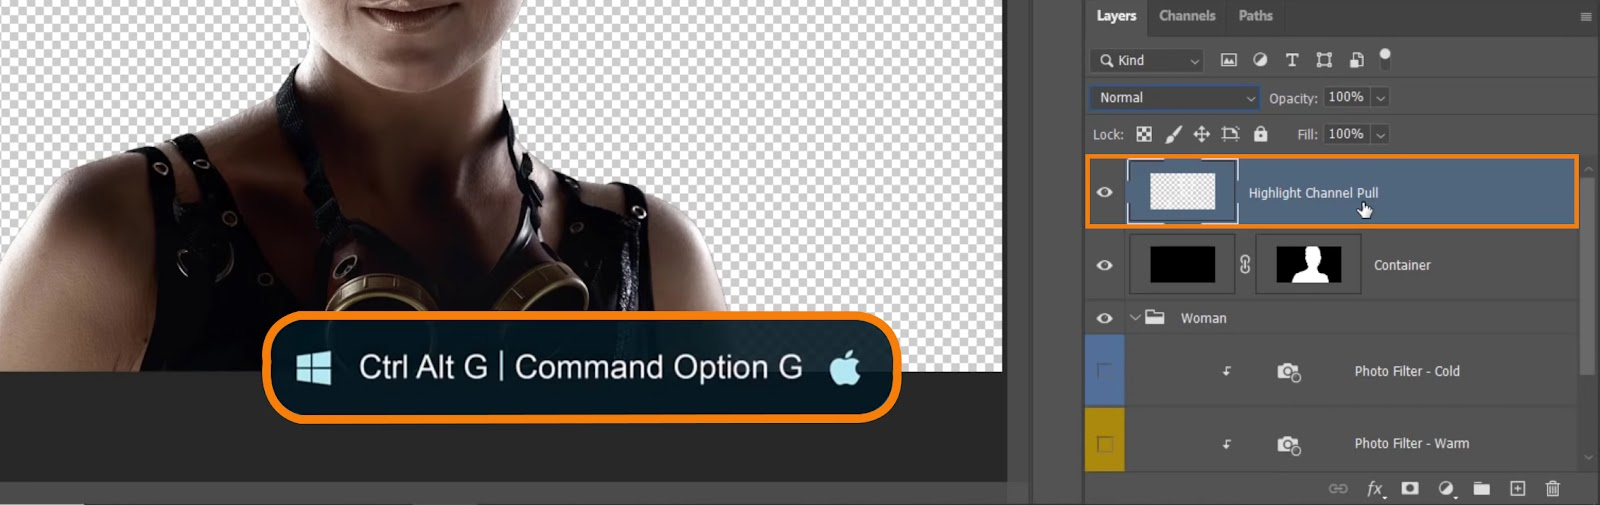 press Ctrl Alt G on Windows or Command Option G on macOS